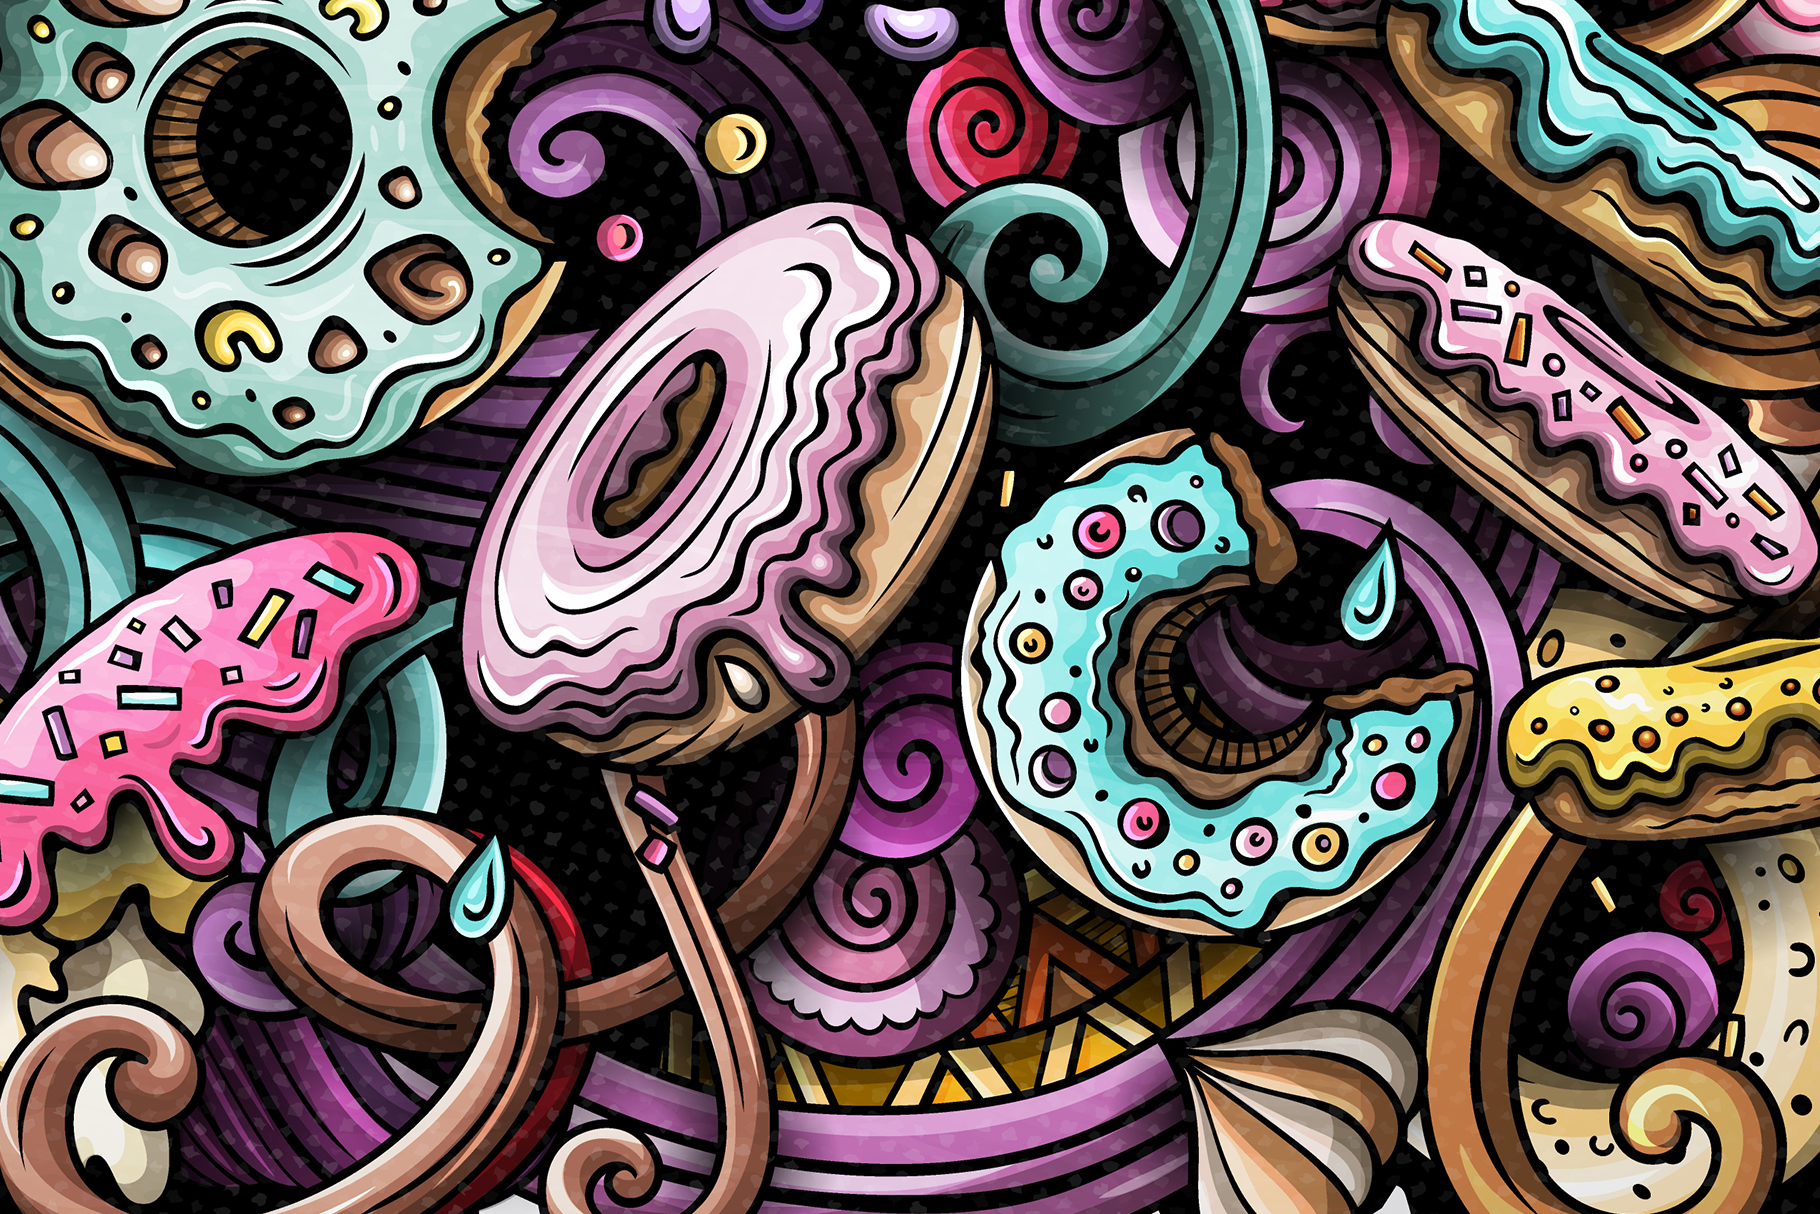 Donuts Vector Doodle Illustration example image 3